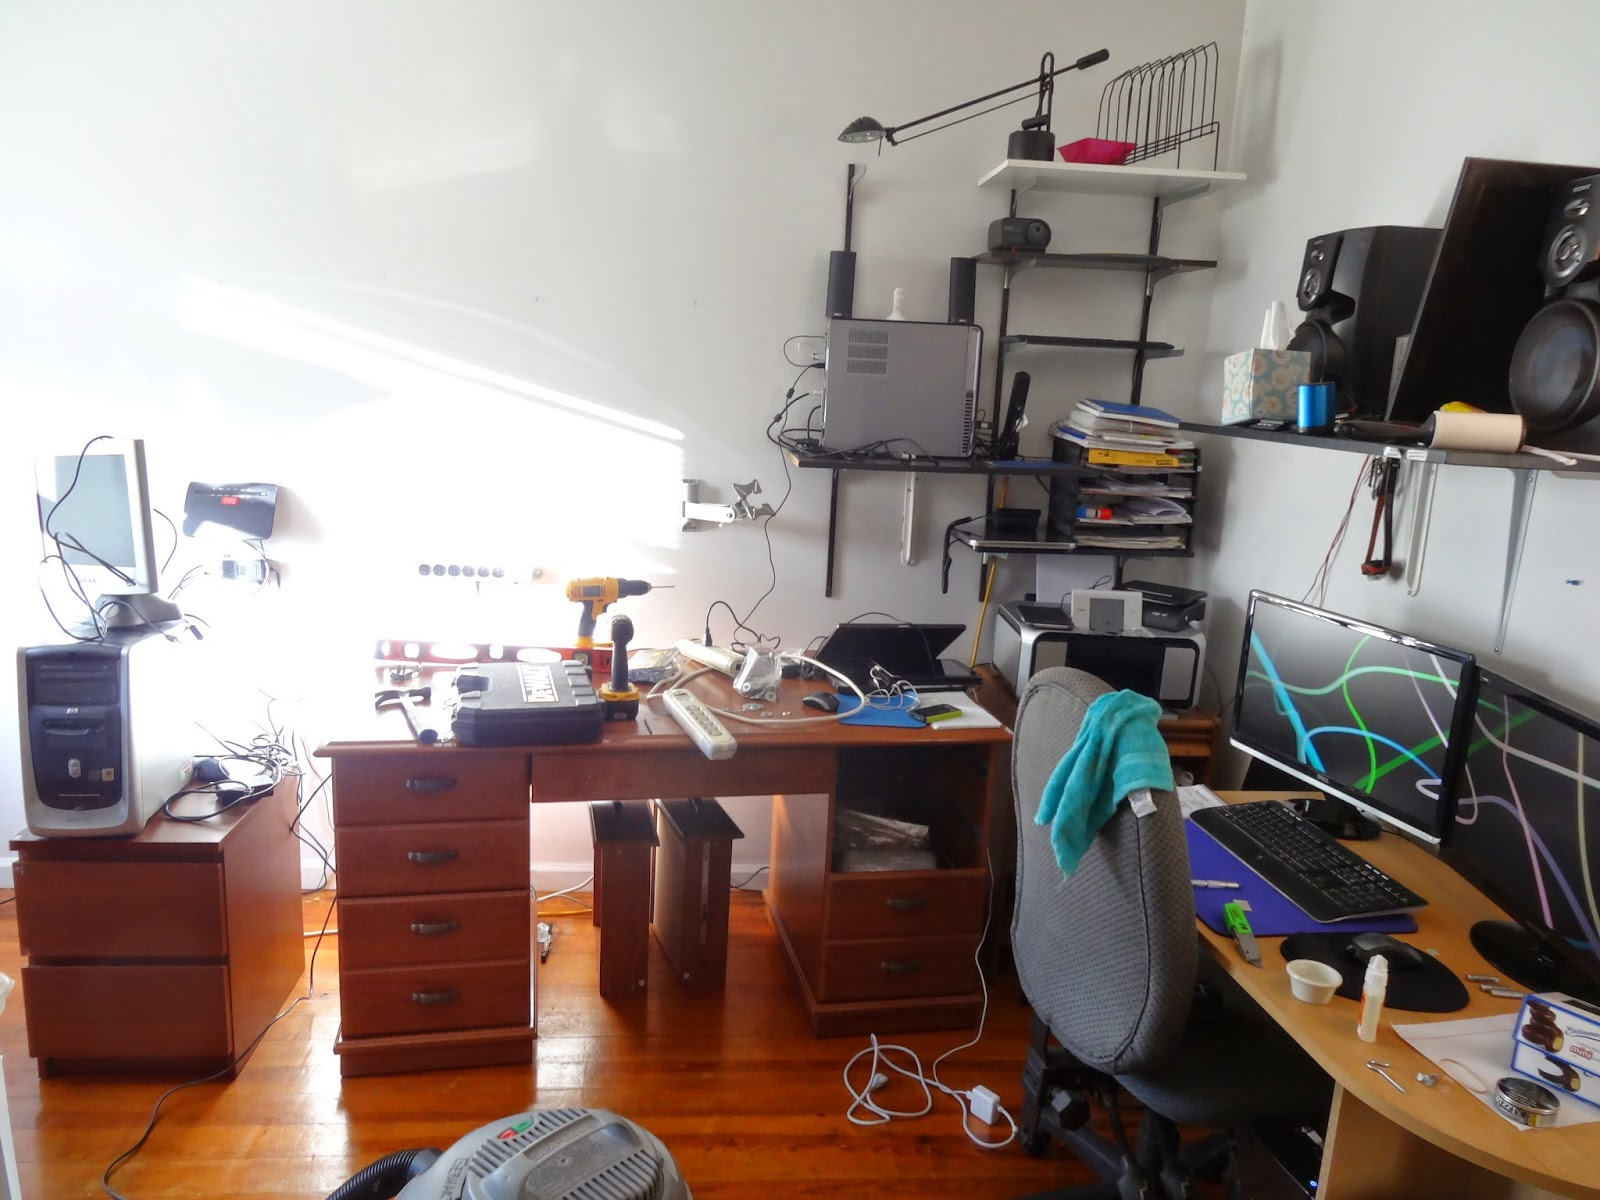 Checking Reality: eBay Office Setup + Packing Area + Photo